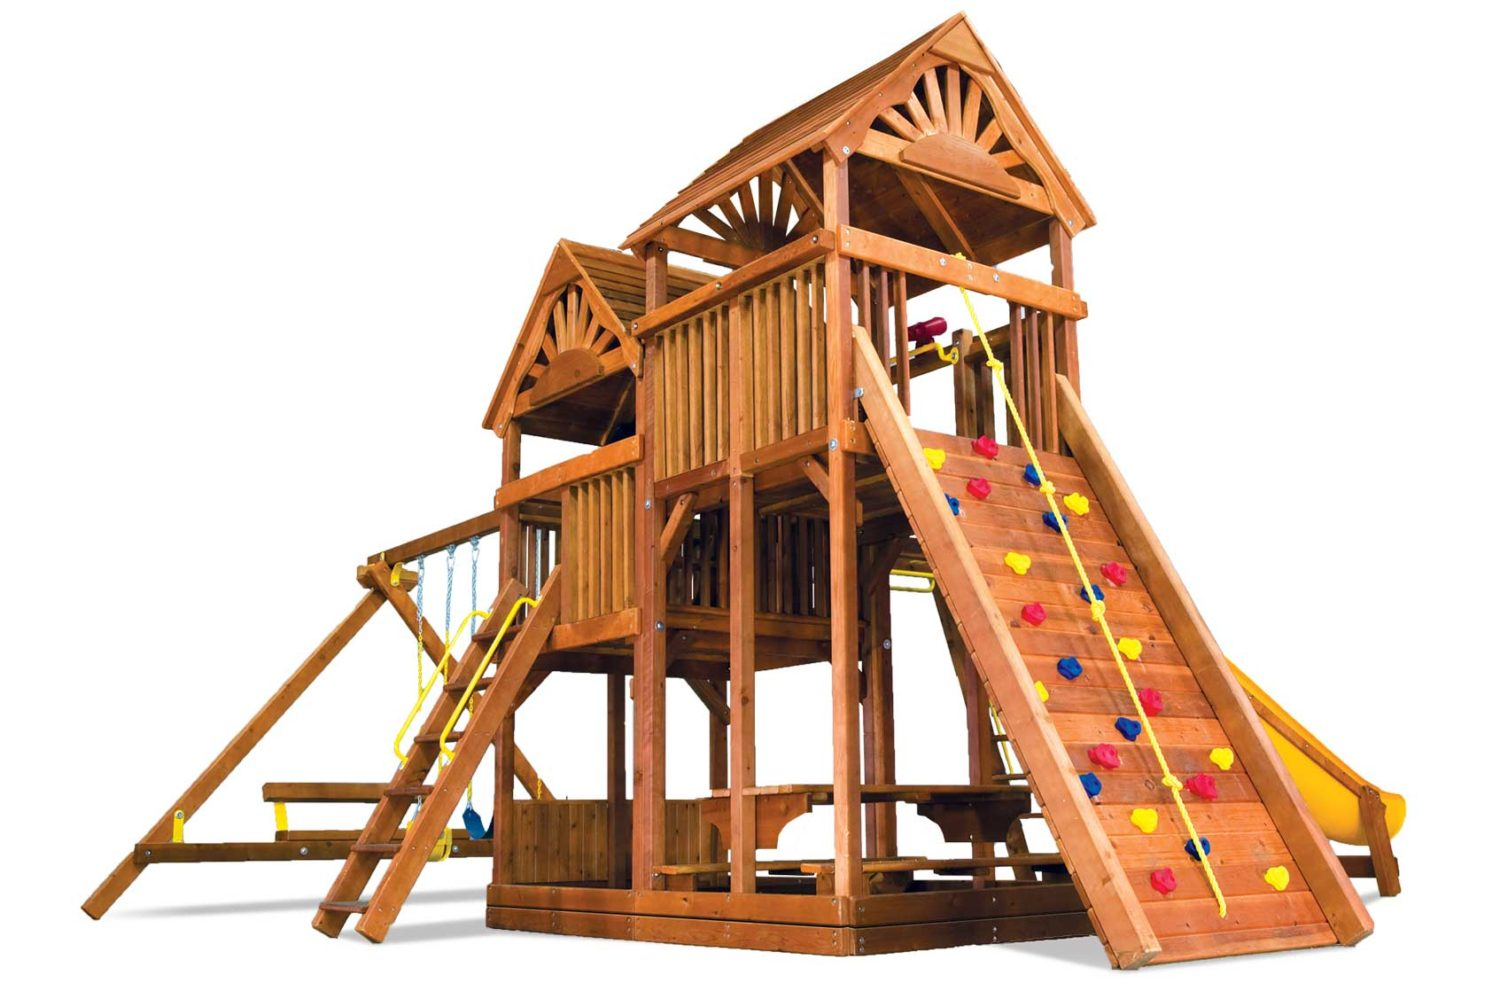 King Kong Clubhouse Pkg III Loaded with Wood Roofs Wooden Swing Set